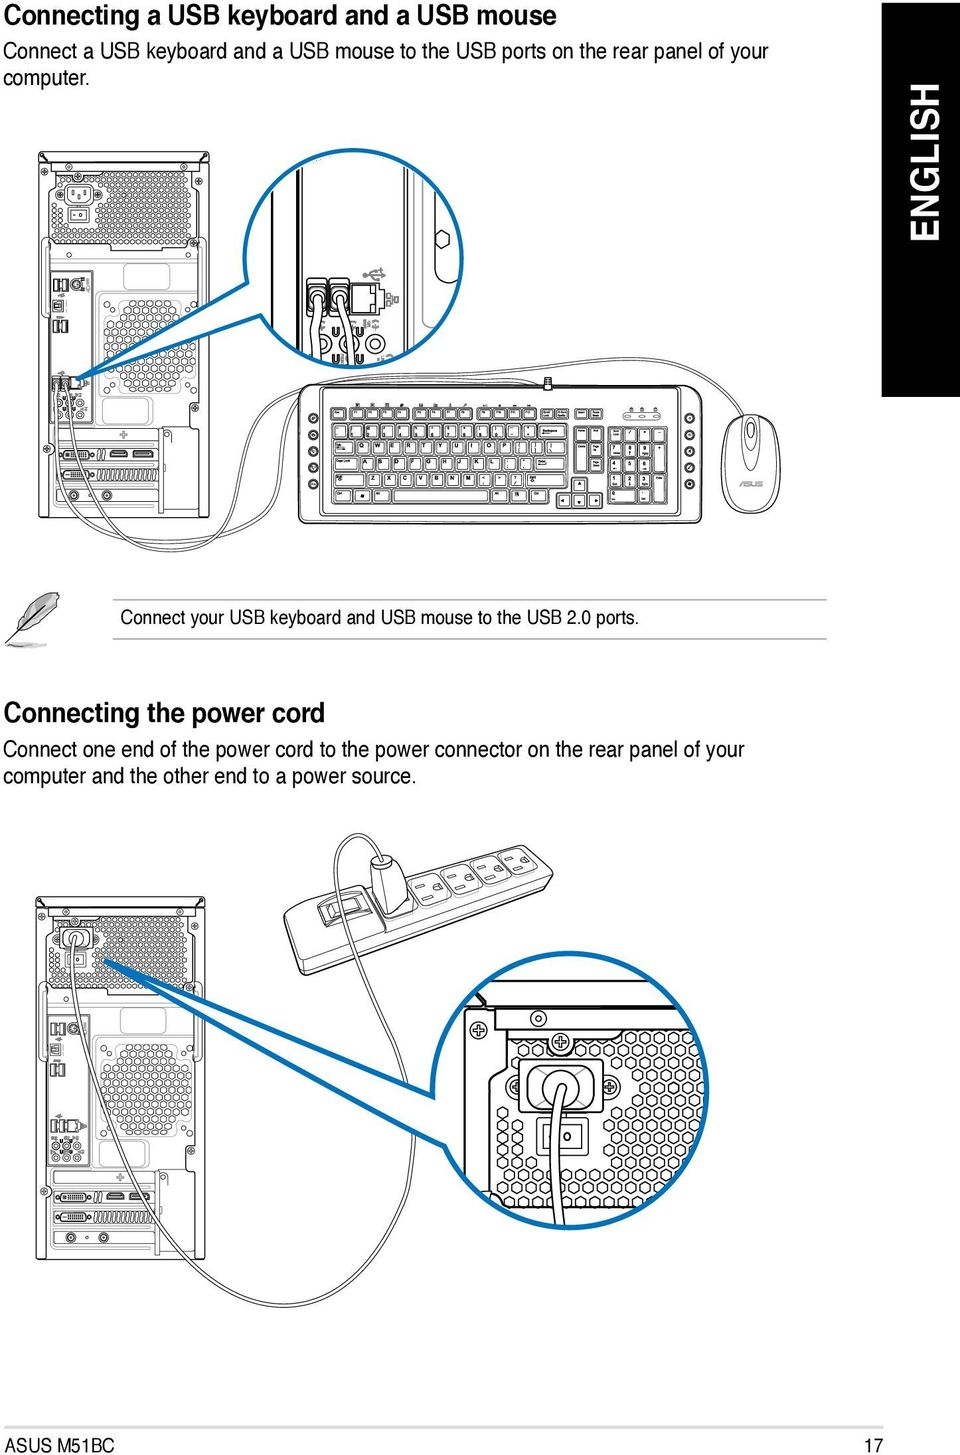 Asus Desktop Pc M51bc User Manual Pdf Usb Cable Wiring Diagram Spdif Out Connect Your Keyboard And Mouse To The 20 Ports